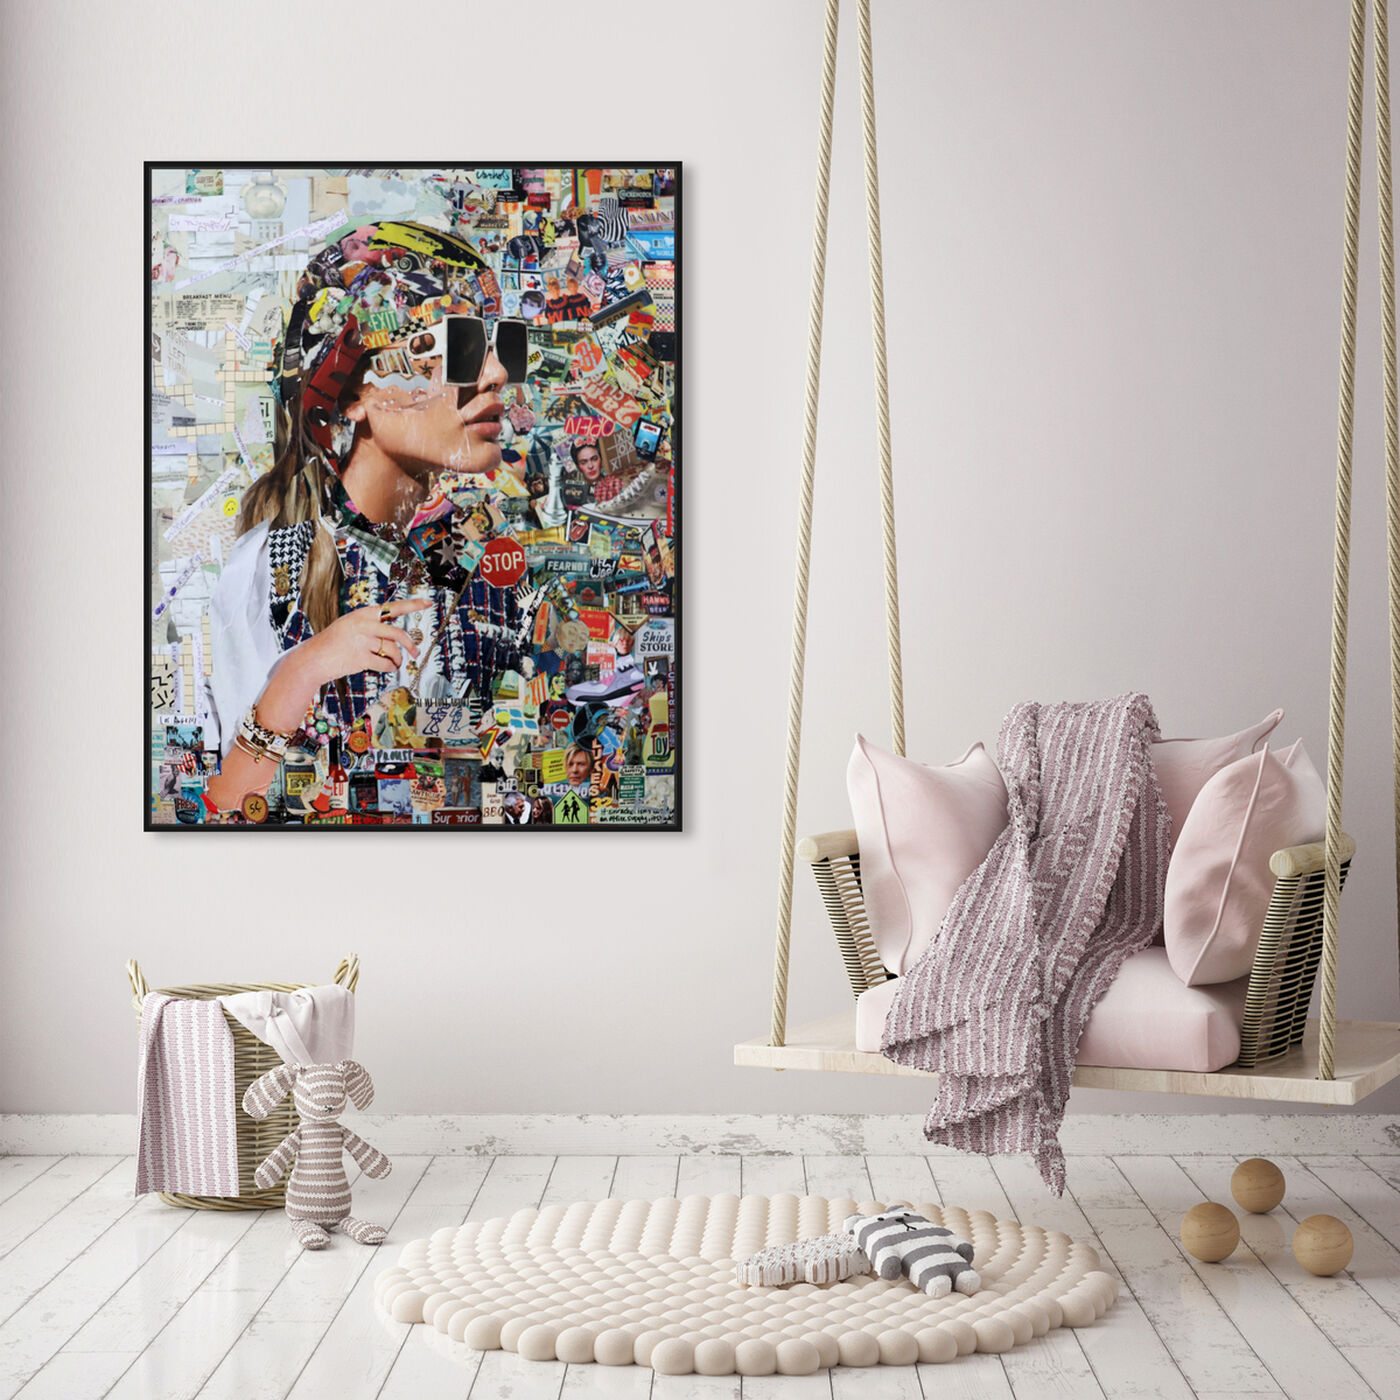 Hanging view of Katy Hirschfeld - Midtown Shades featuring fashion and glam and portraits art.